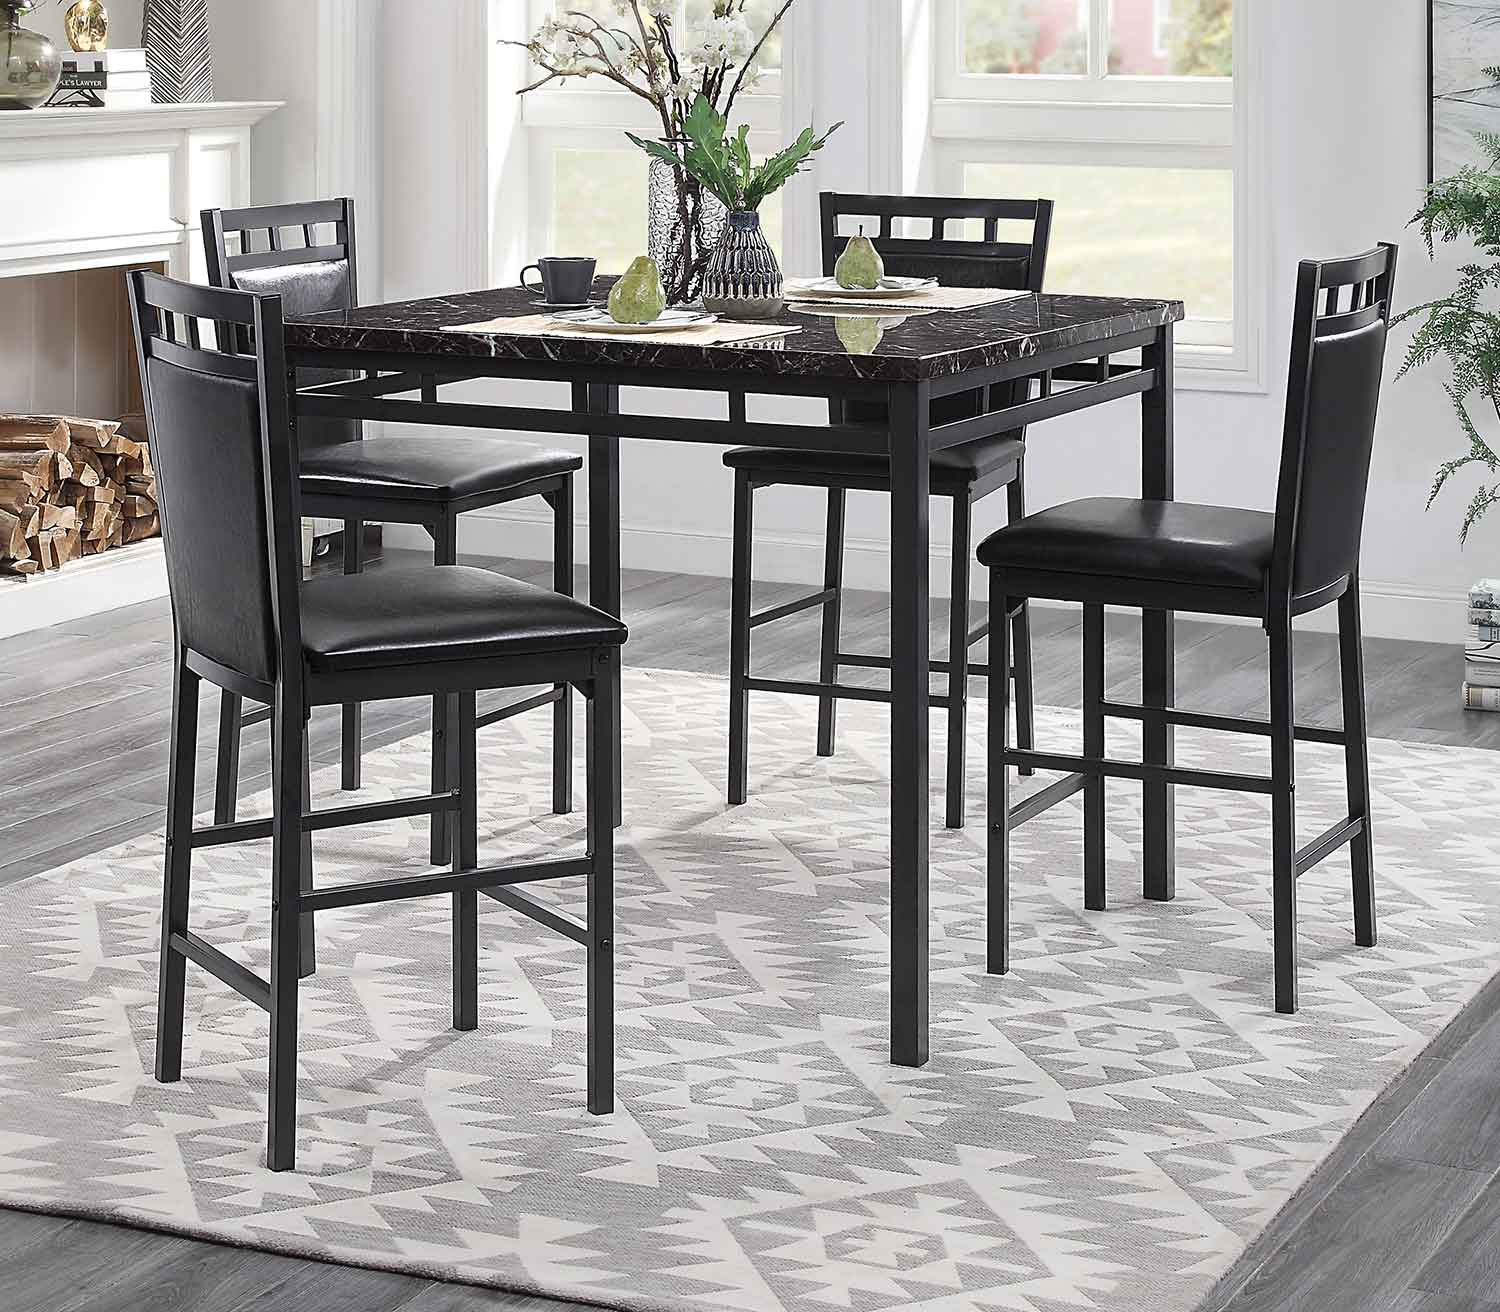 Homelegance Olney 5-Piece Pack Counter Height Set - Faux Marble Top